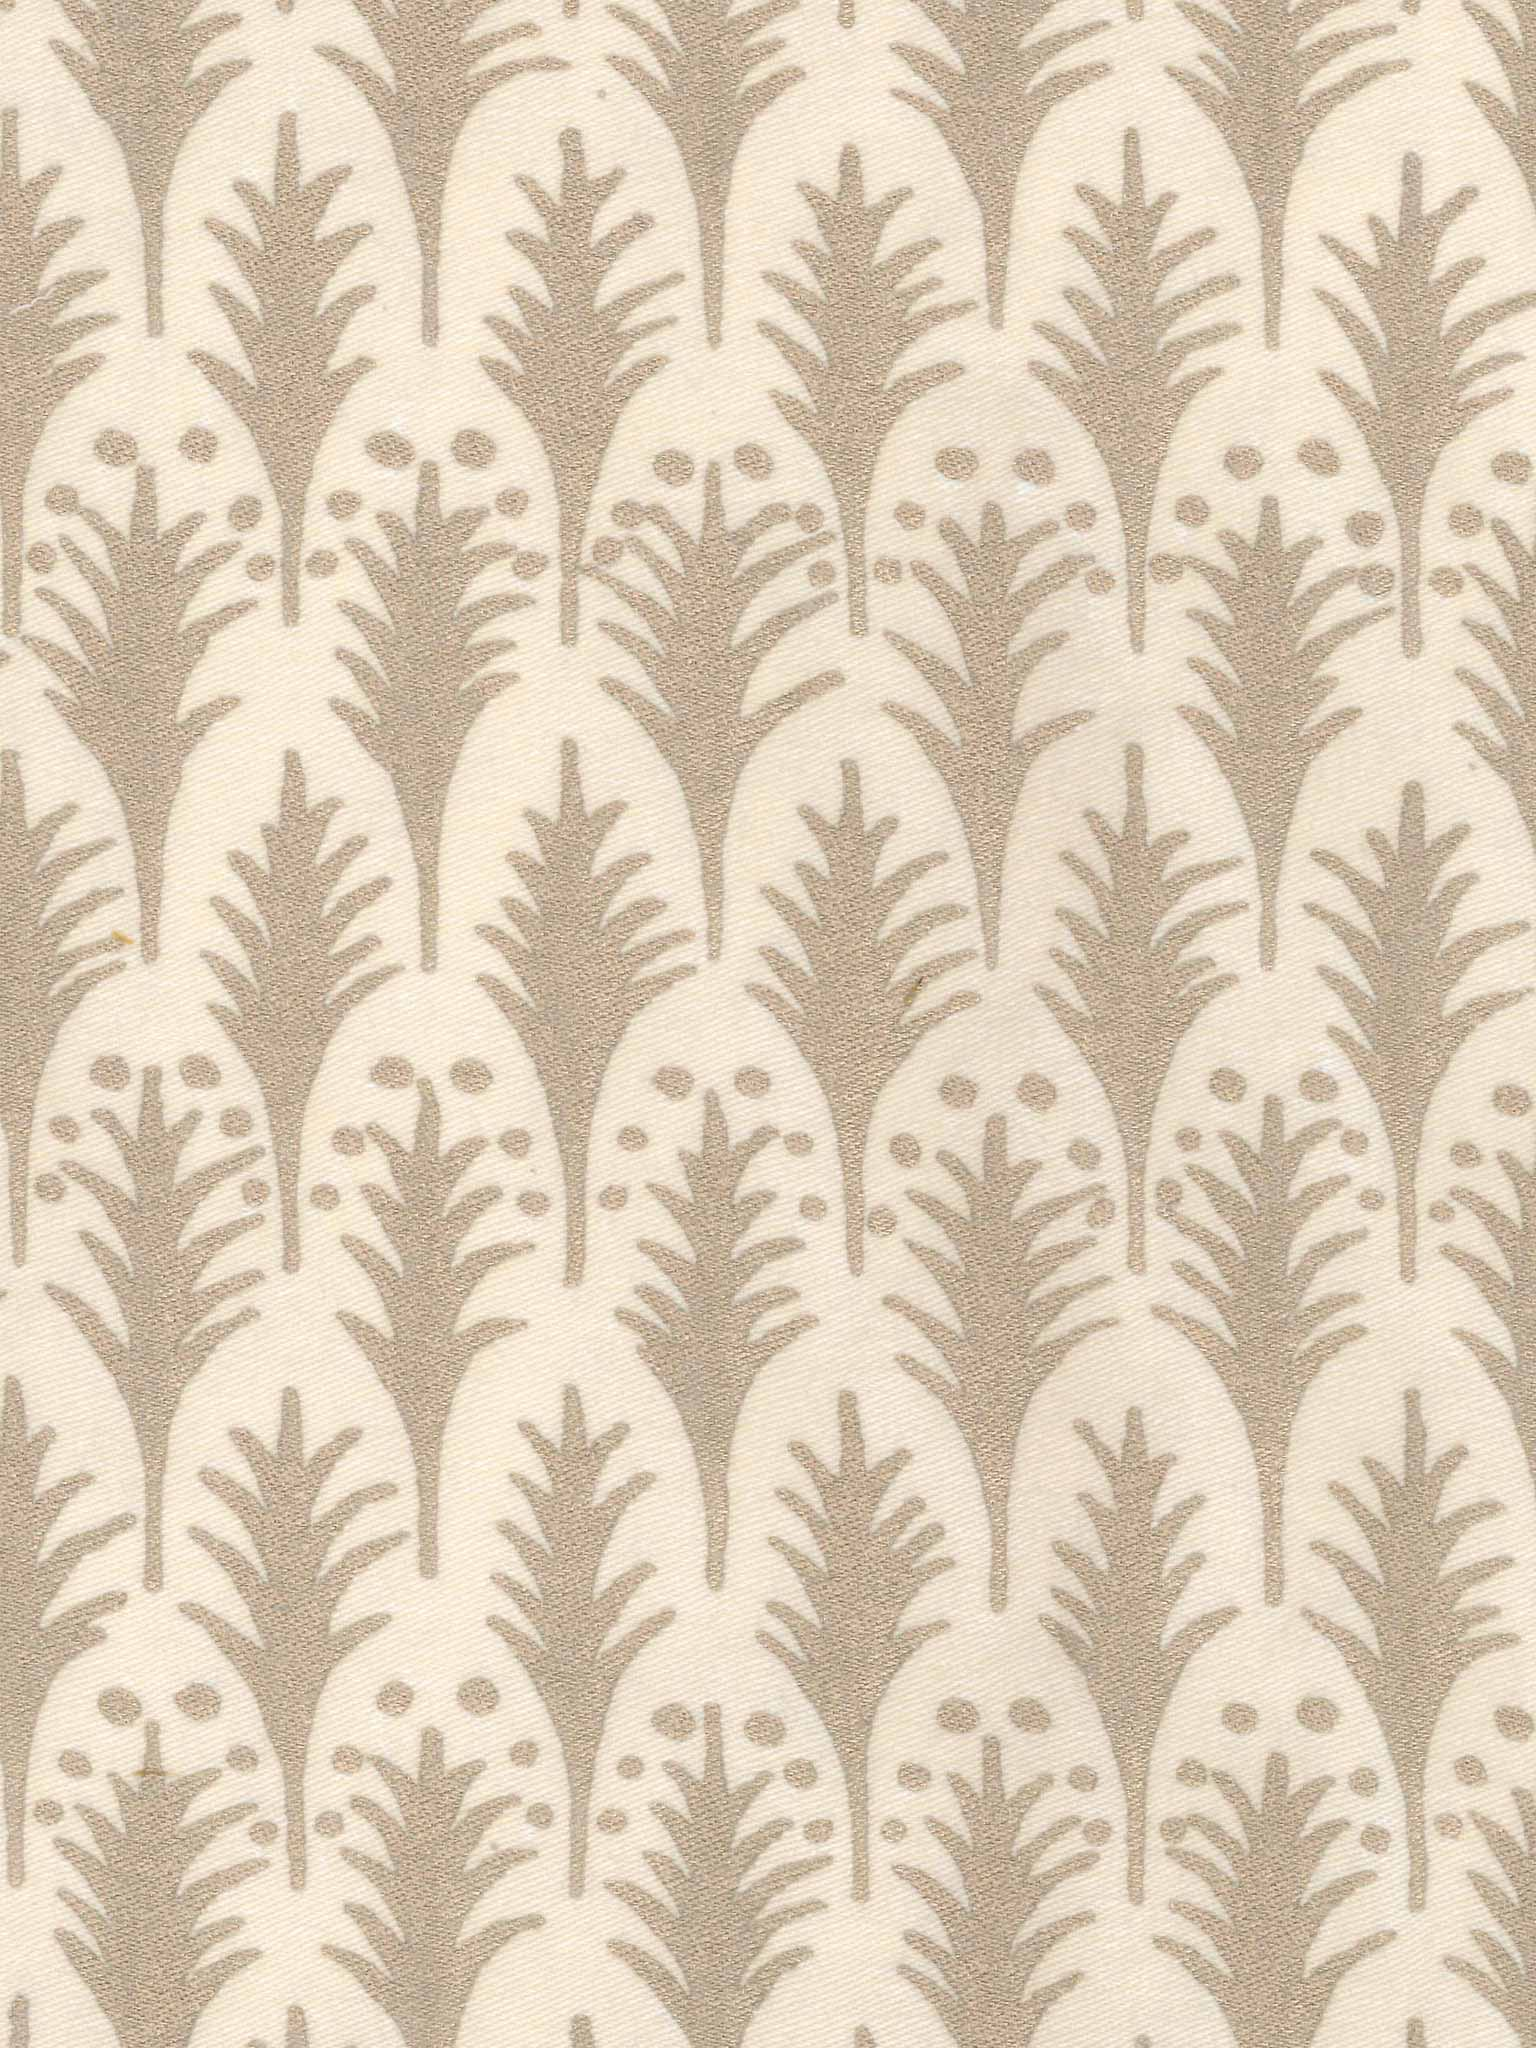 Piumette in ivory gold fortuny 5656 piumette in ivory gold fortuny printed cottons sisterspd